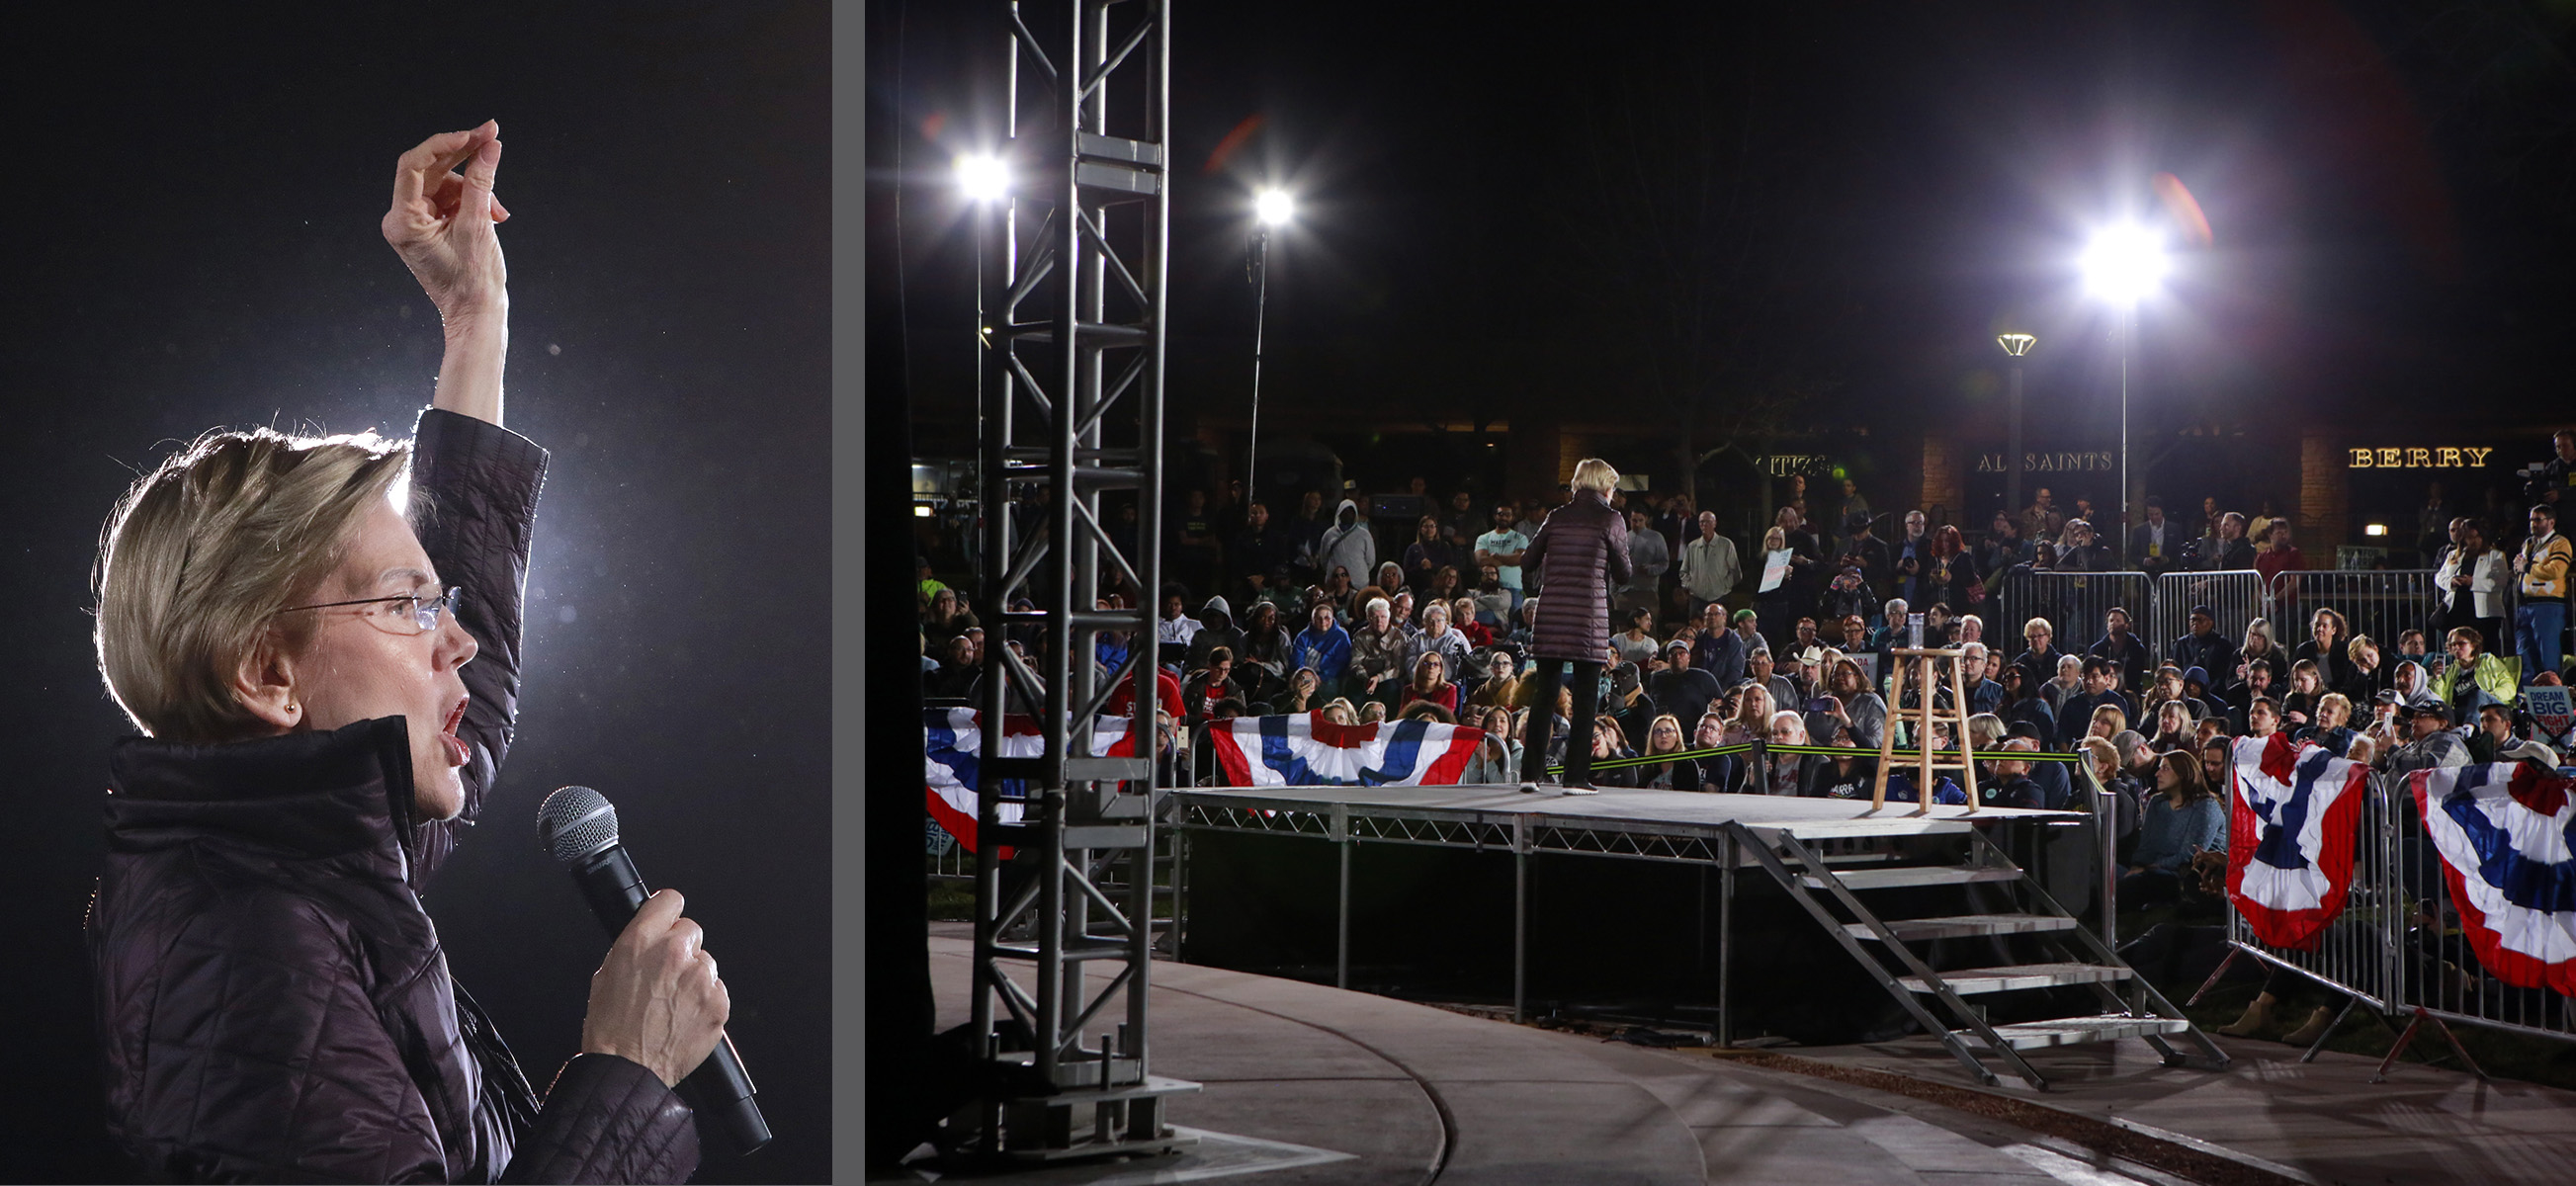 Democratic presidential candidate Sen. Elizabeth Warren, D-Mass., speaks at a campaign rally on the night prior to the Nevada Democratic Caucus Friday, Feb. 21, 2020, in Las Vegas. (Photo by Ronda Churchill/AFP)